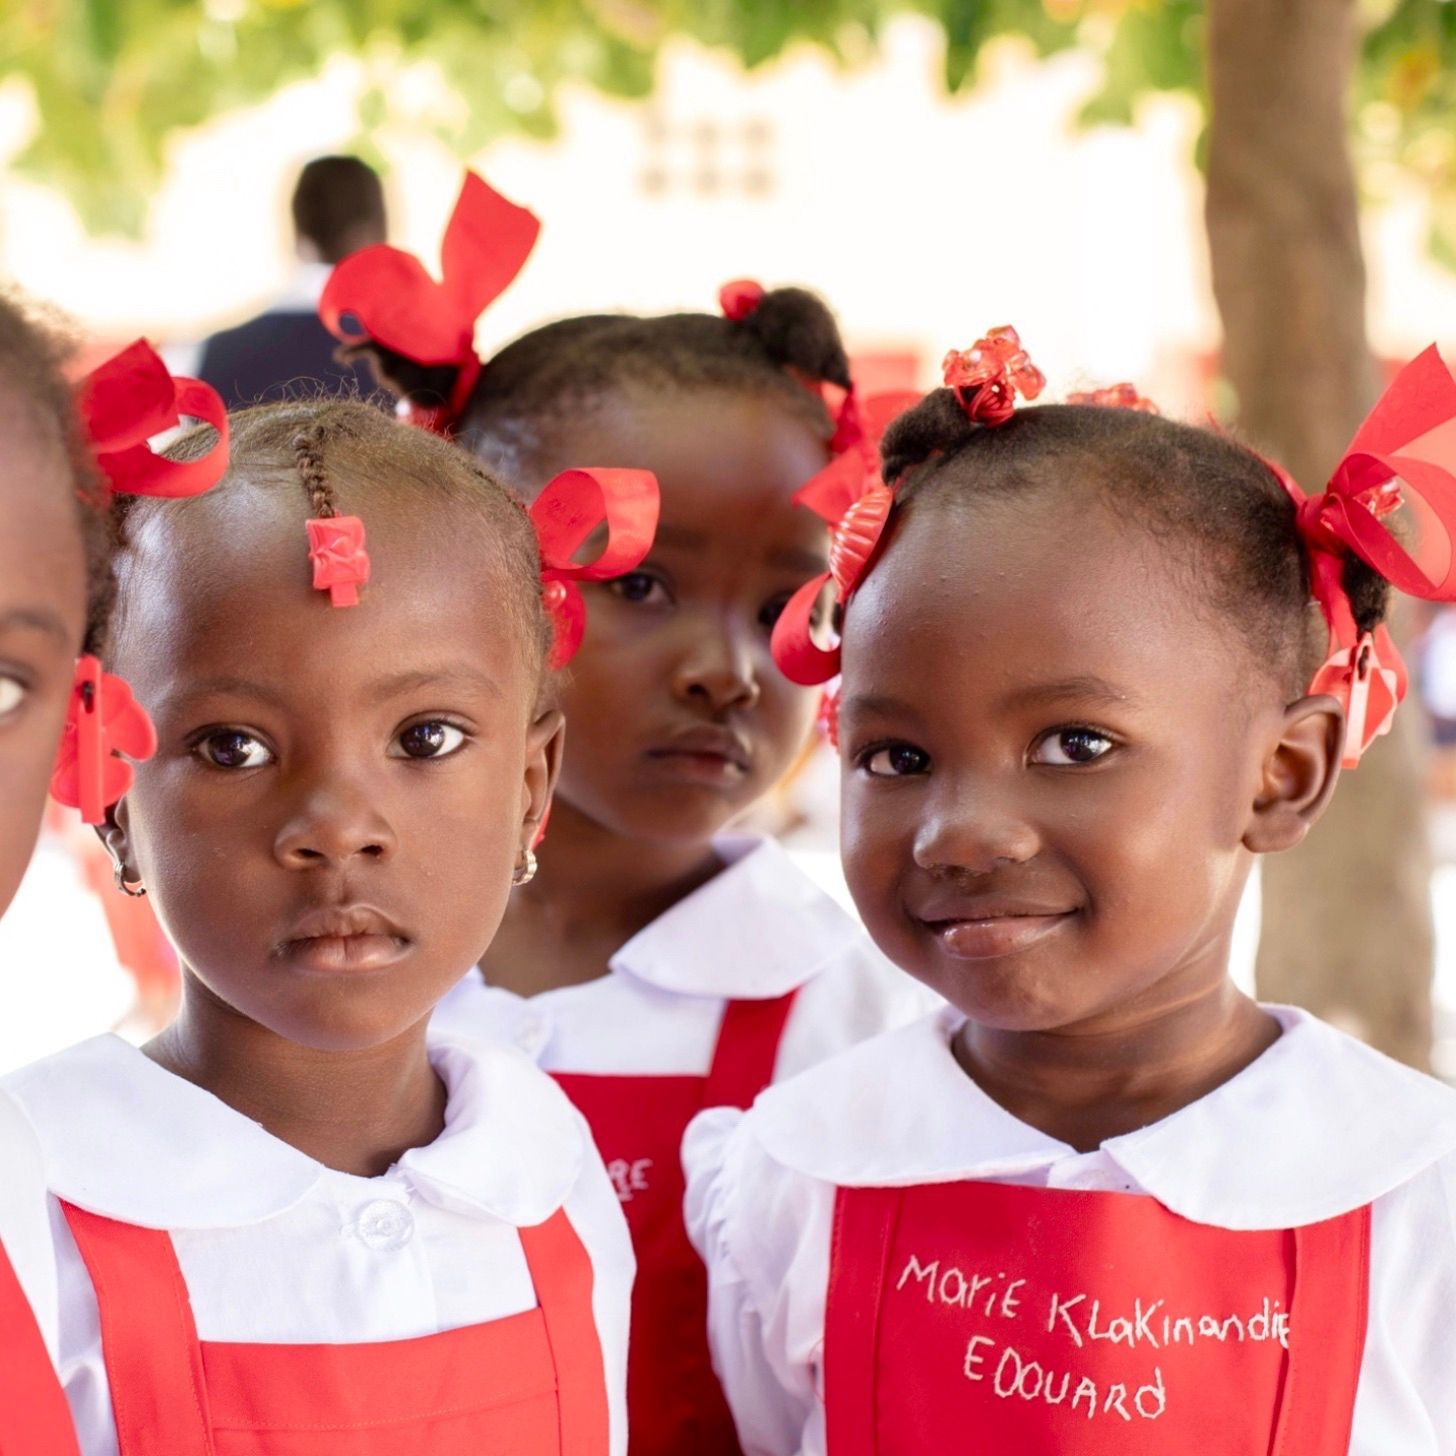 School children on set of our shoot for Konbit/Papyrus in Quartier Morin. So fun to identify images from all over the country that pick up the red of our red color story. ❤️ #creatives #creativeminds #eyephotography #photographer #photographycompany #ayashamedia #mediacompany #haiti #haitianphotography  #PhotographyEveryday #Photogram #JustGoShoot #InstaPhoto #WorldBestGram #PhotographySouls #PhotoOfTheDay